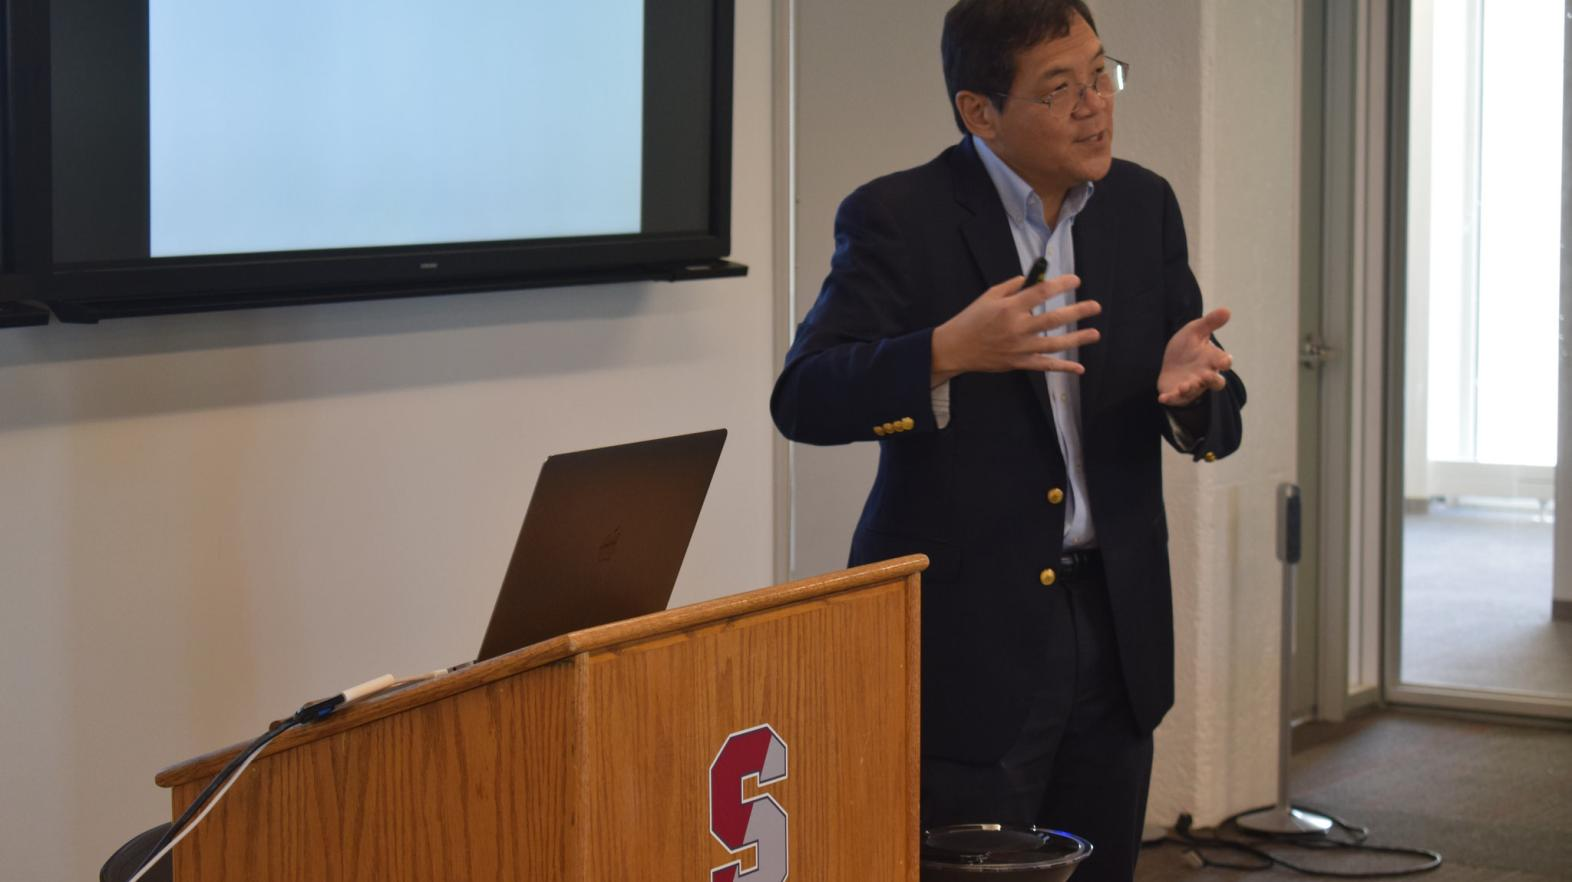 Stephen Chew speaks at Springfield College